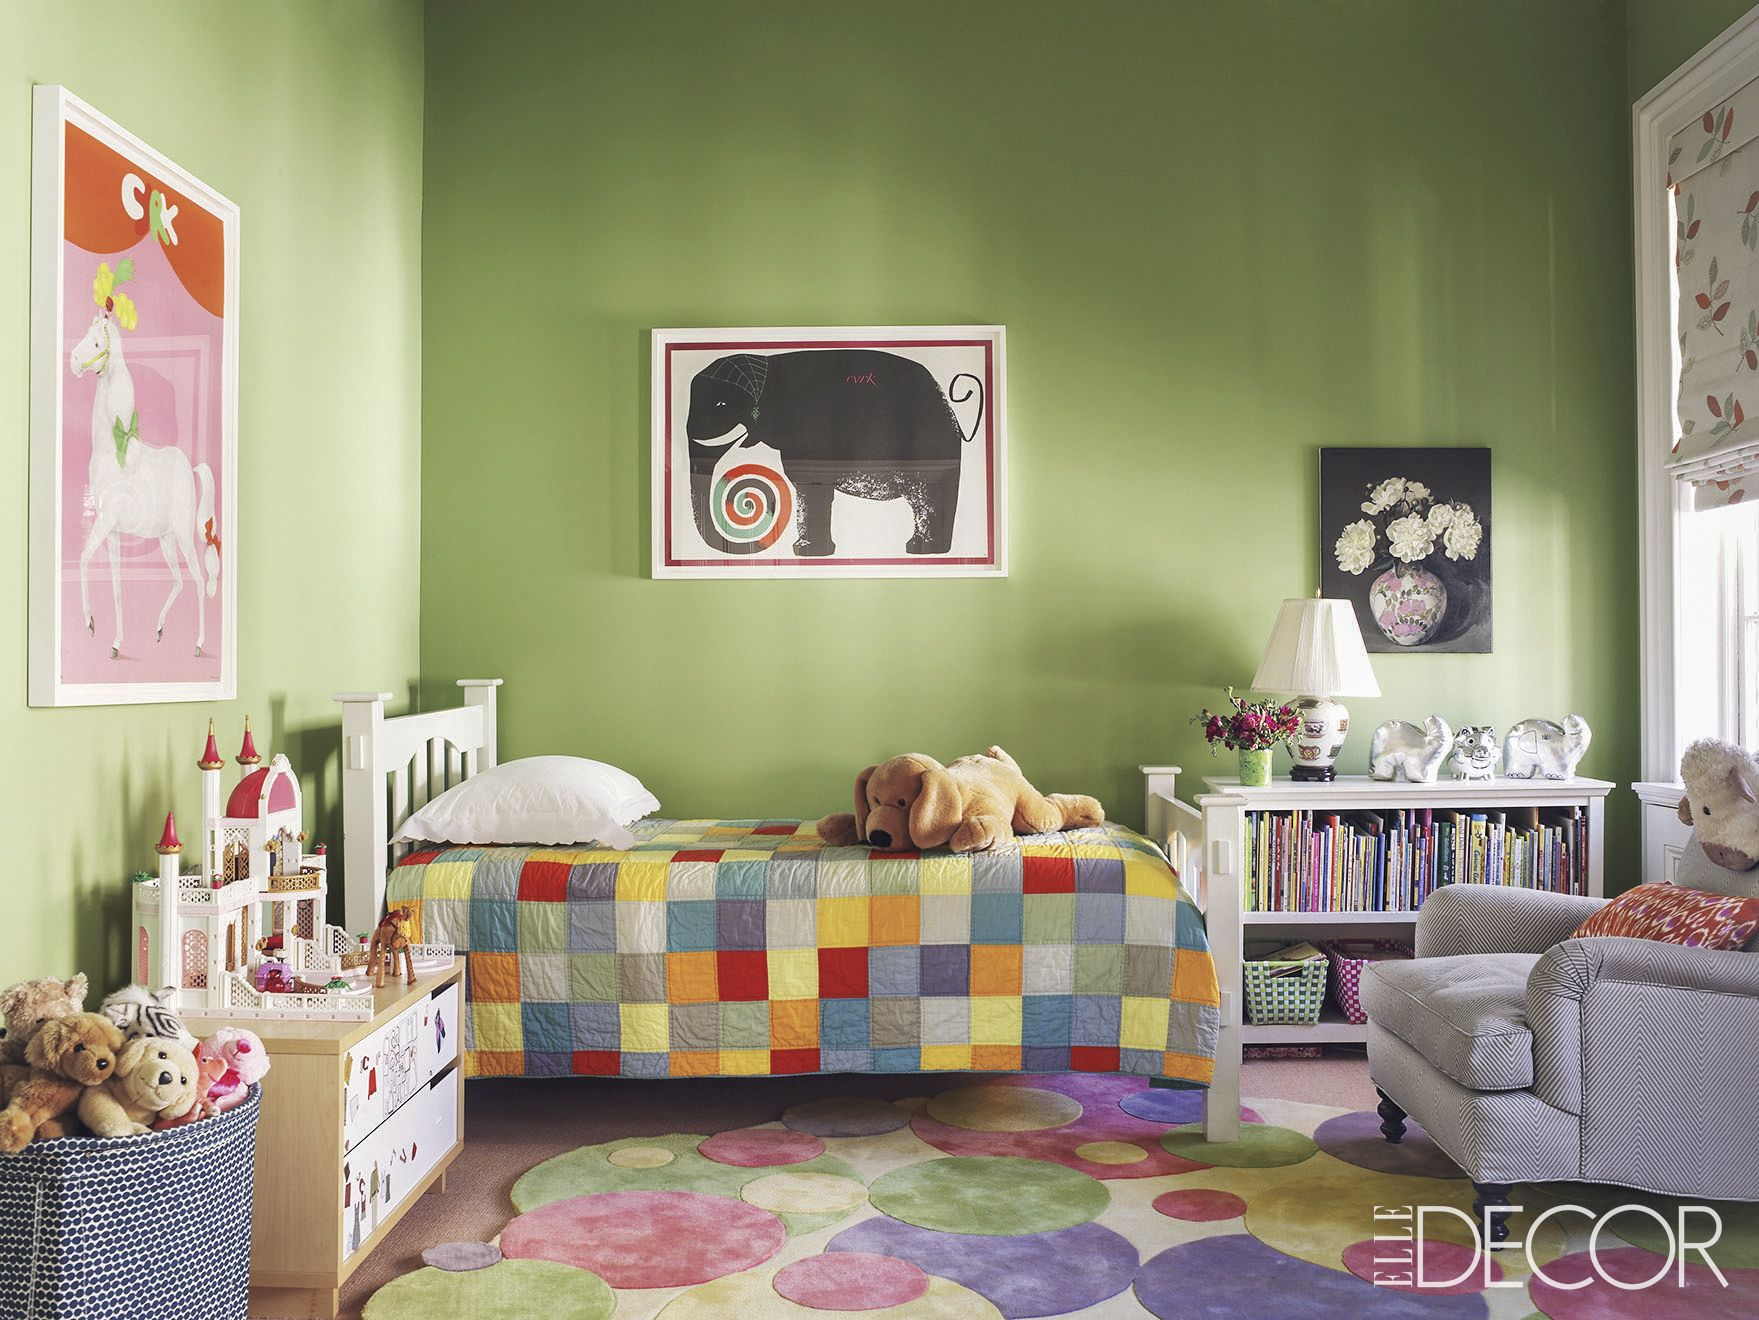 Captivating Kids Room Decorating Ideas